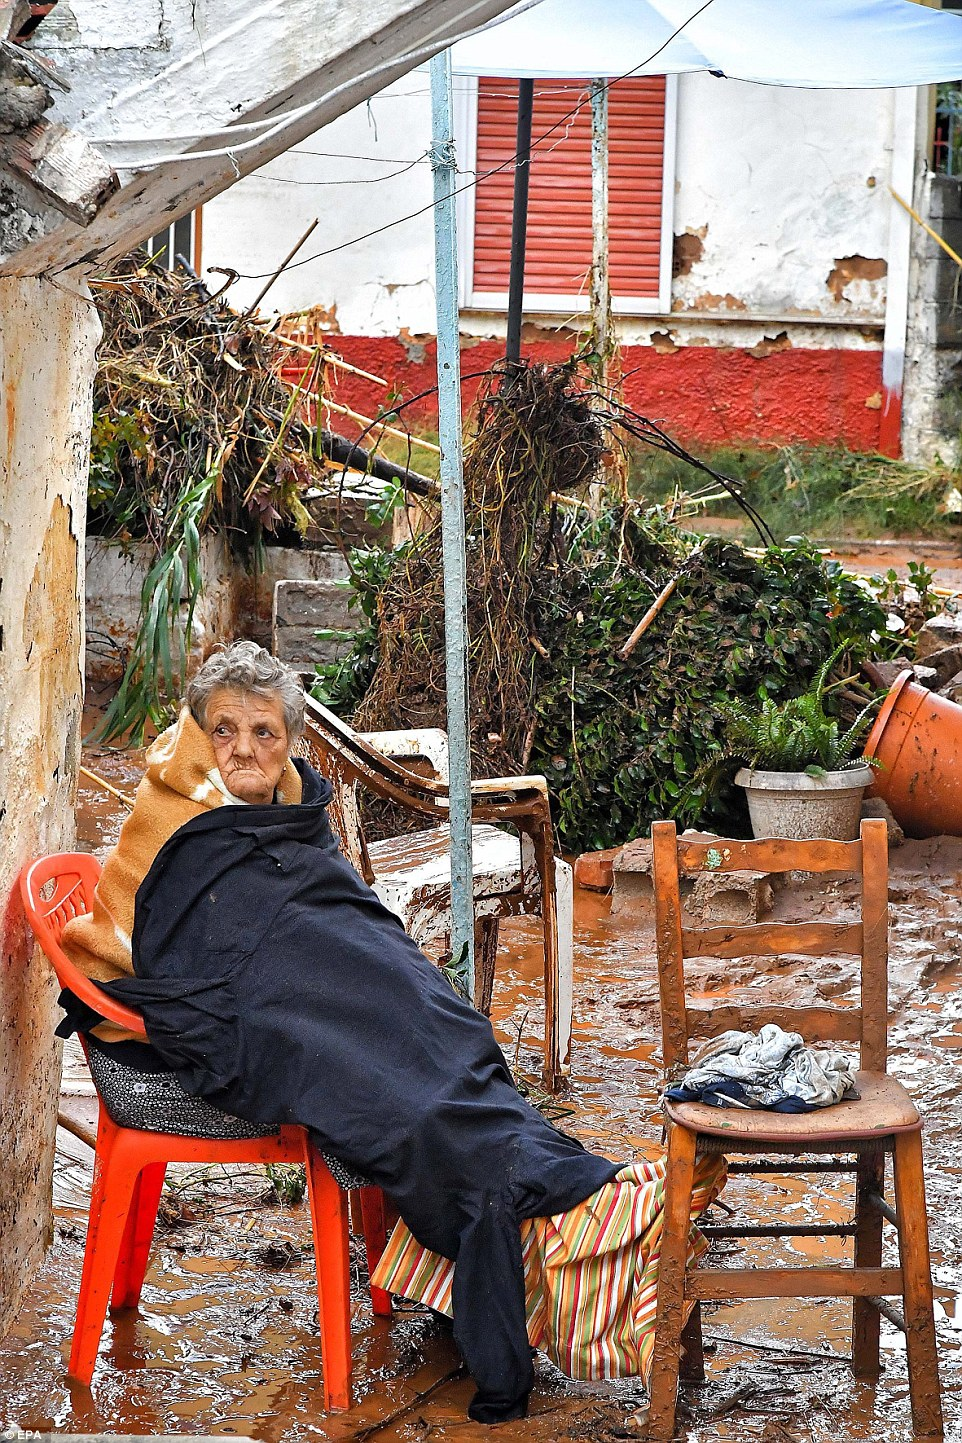 chair for elderly ergonomic company greece floods kill 4 people after heavy rain batters thermaikos, kalamata and sparta | daily ...